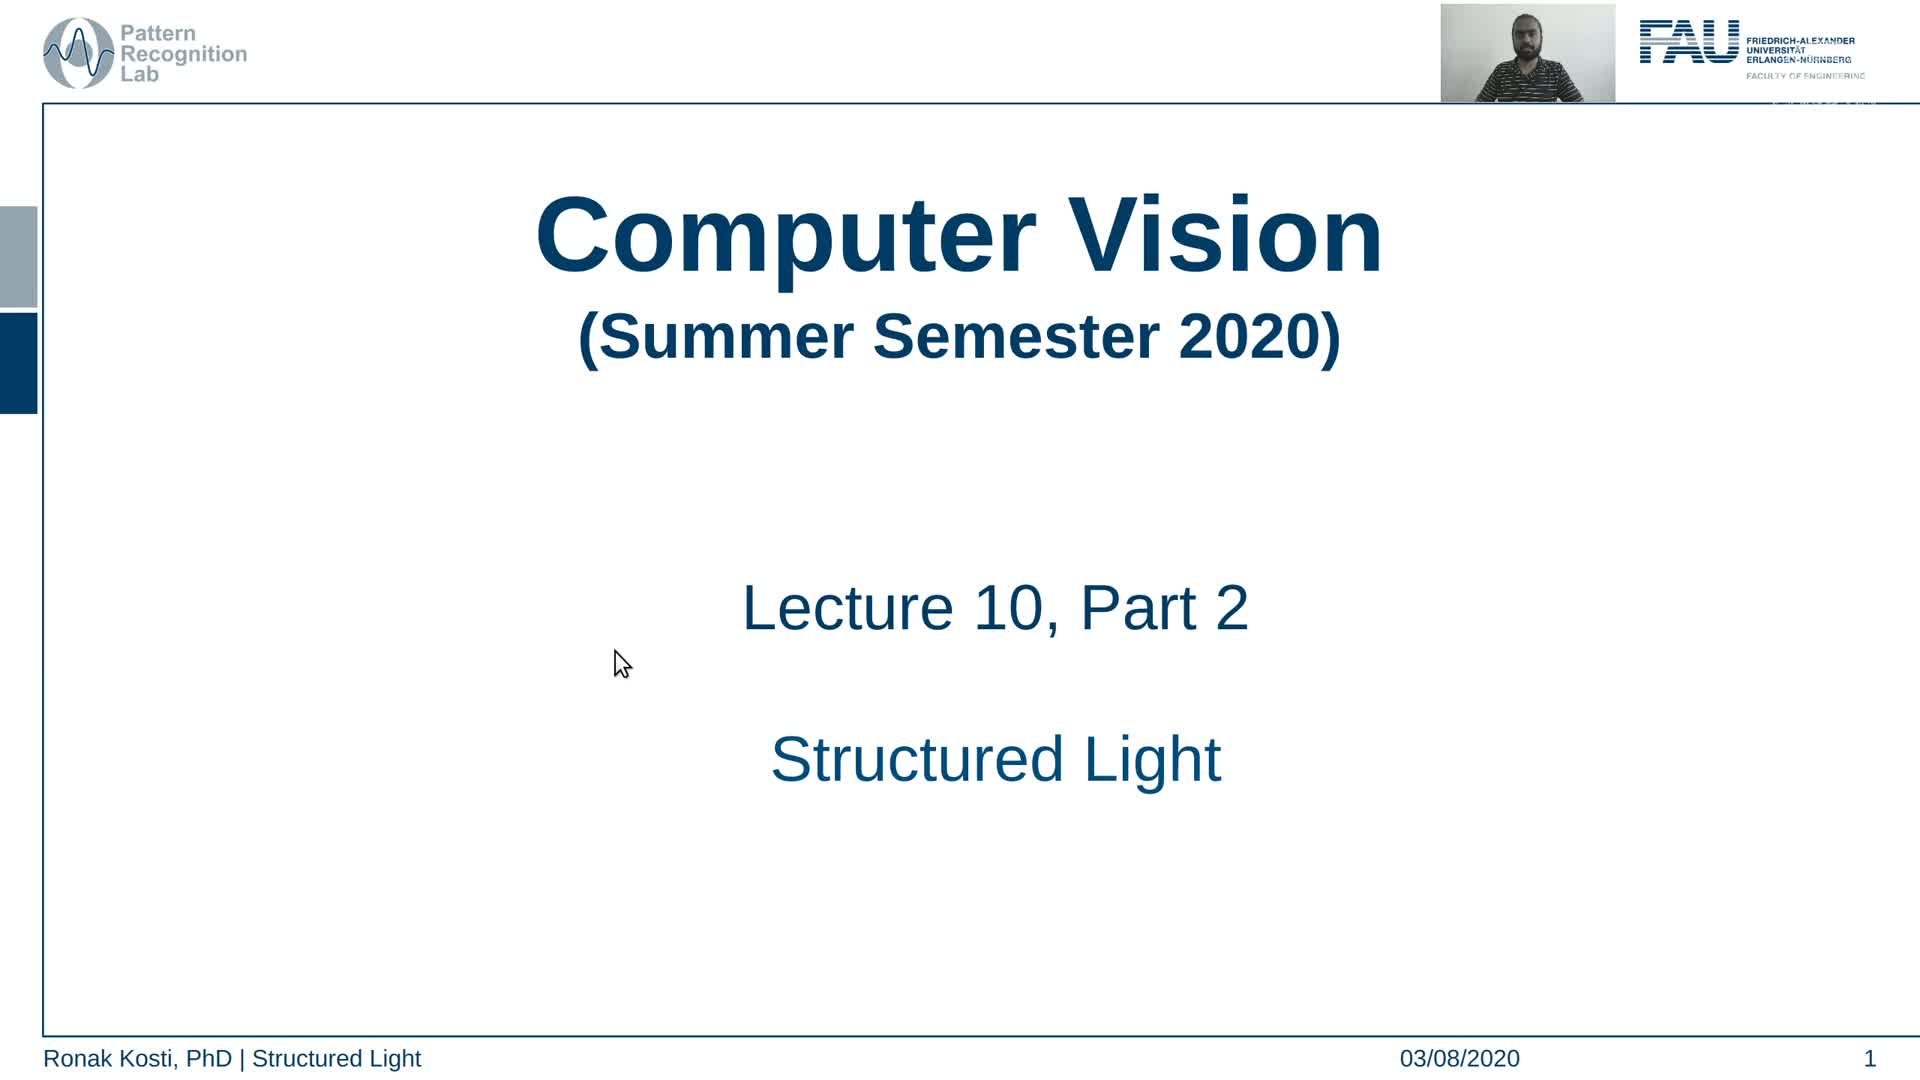 Structured Light (Lecture 10, Part 2) preview image